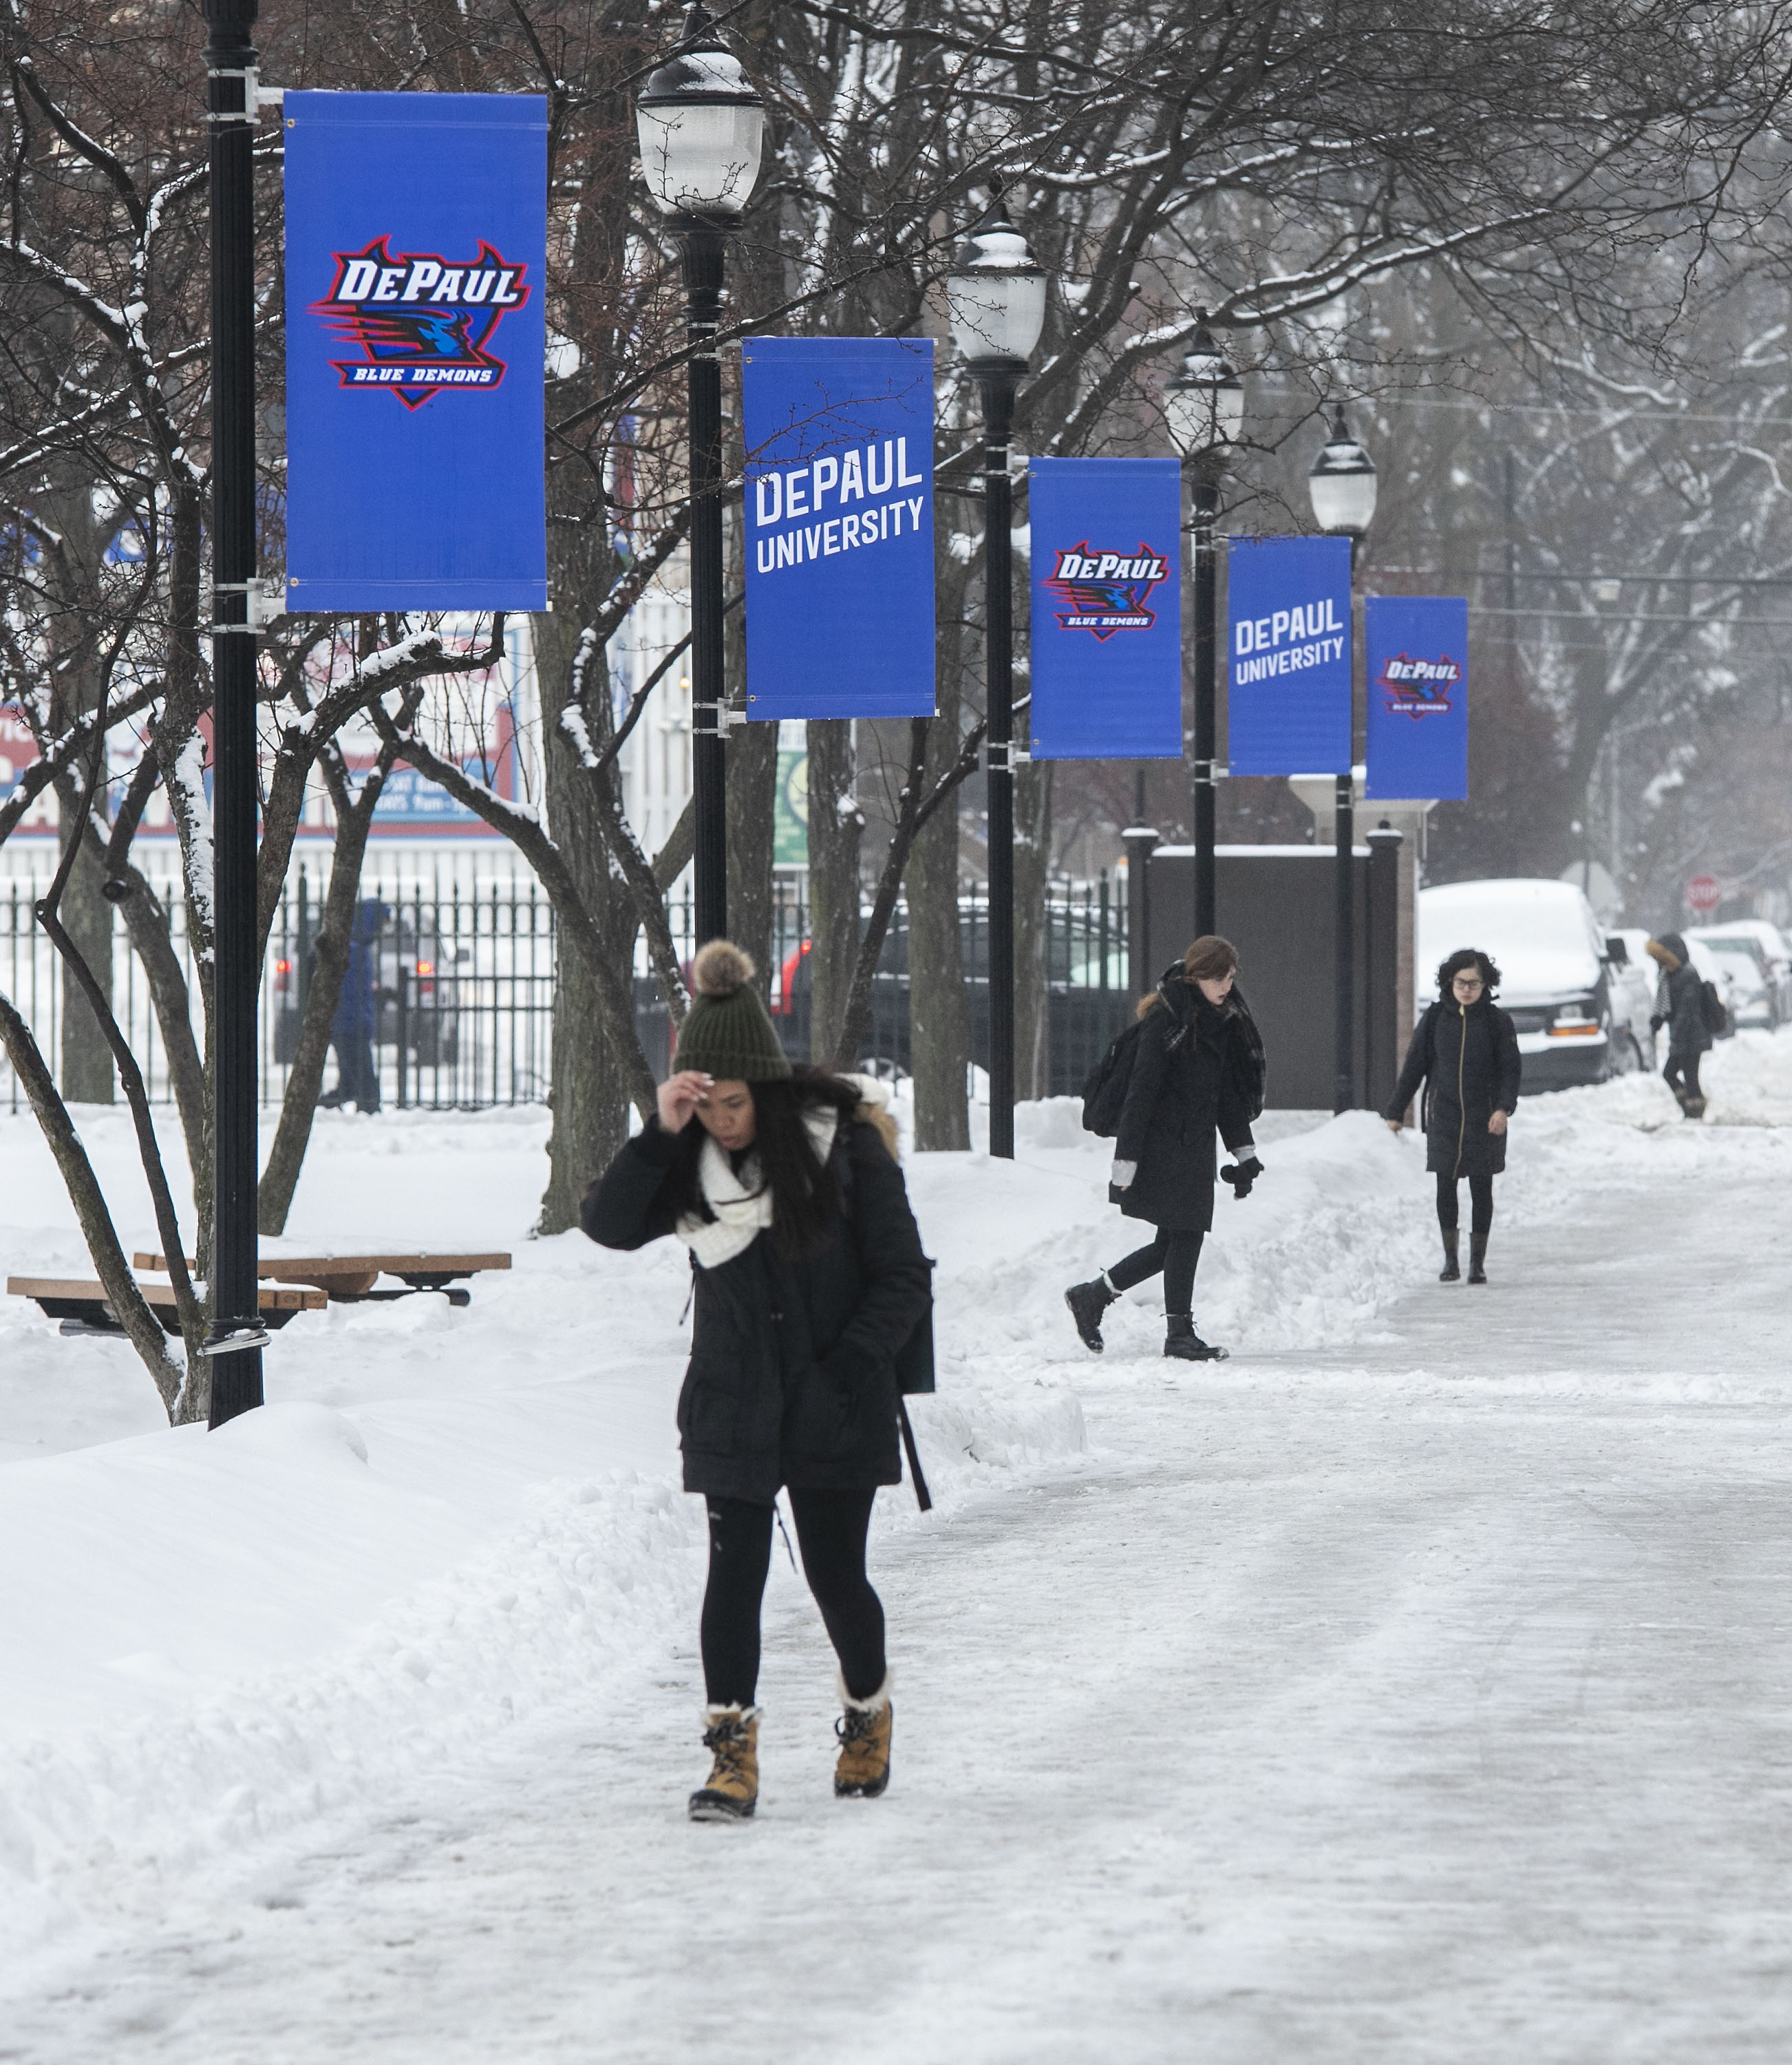 snow on DePaul campus